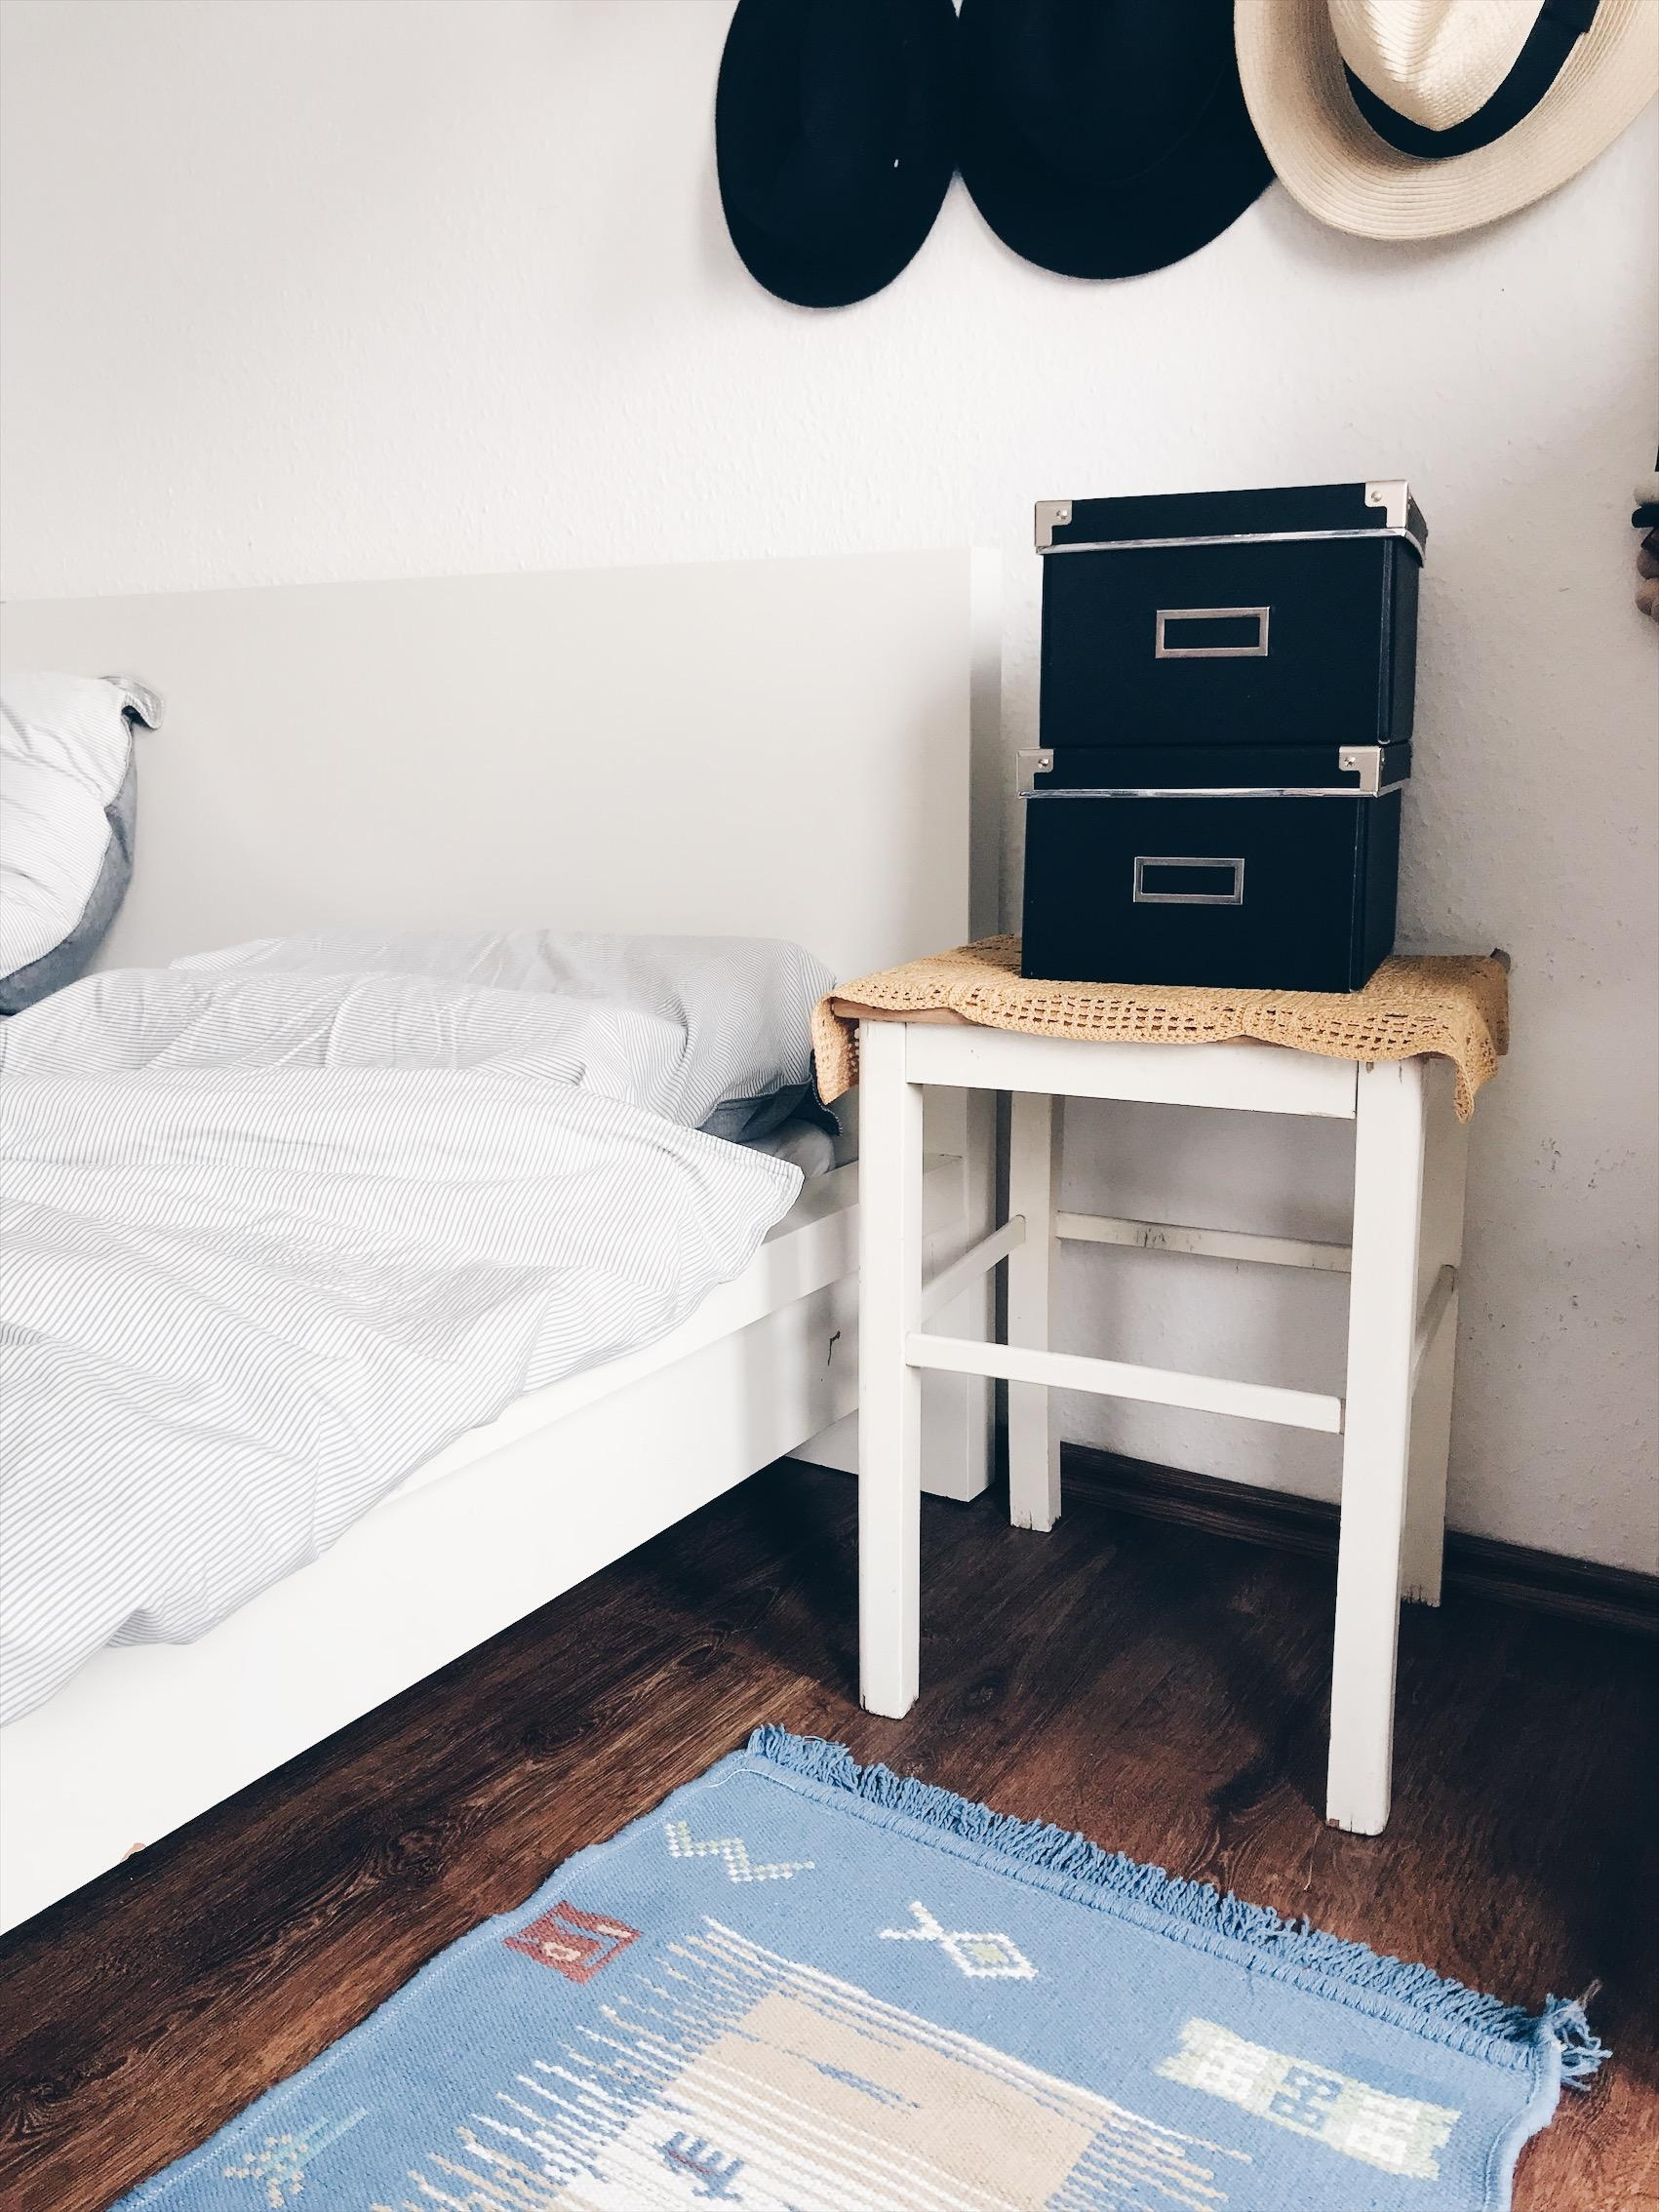 #Homelove #couchliebt #boxes #interior #bedroom #Schlafzimmer #diy #scandi #Nordic #minimalism